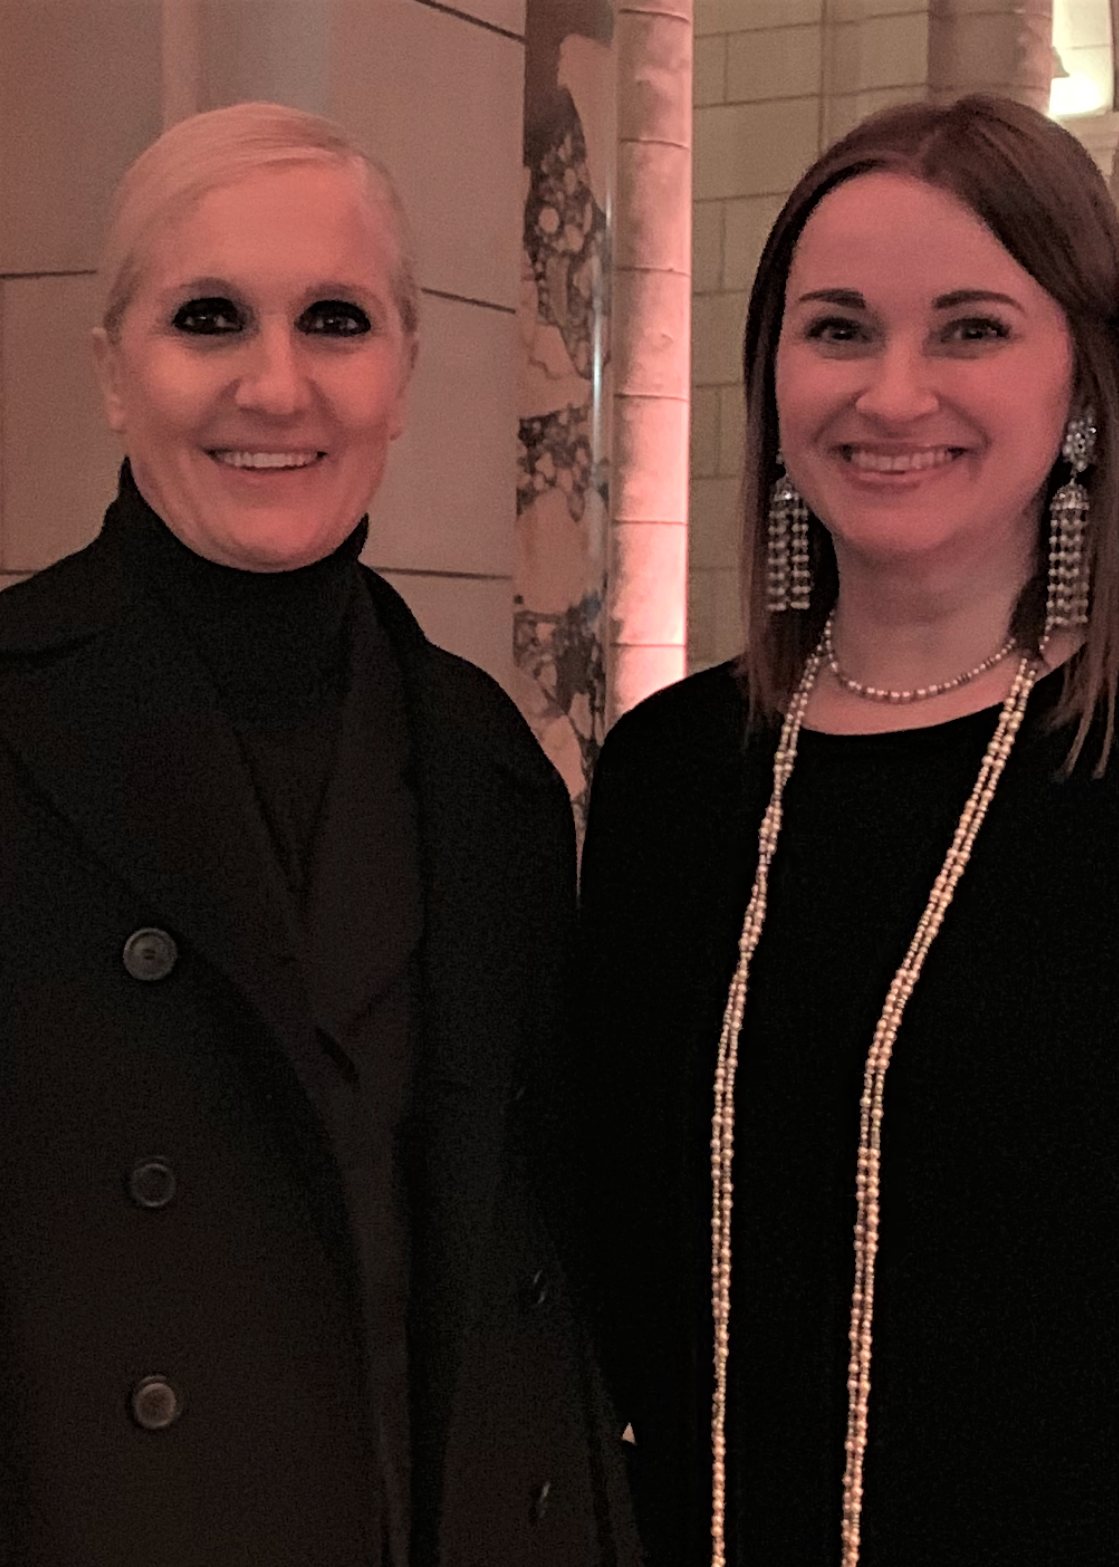 Jennifer Gibson Jewellery | Attending the Pre Exhibition Private Viewing Evening| Dior Designer of Dreams at the Victoria and Albert Museum January 2019